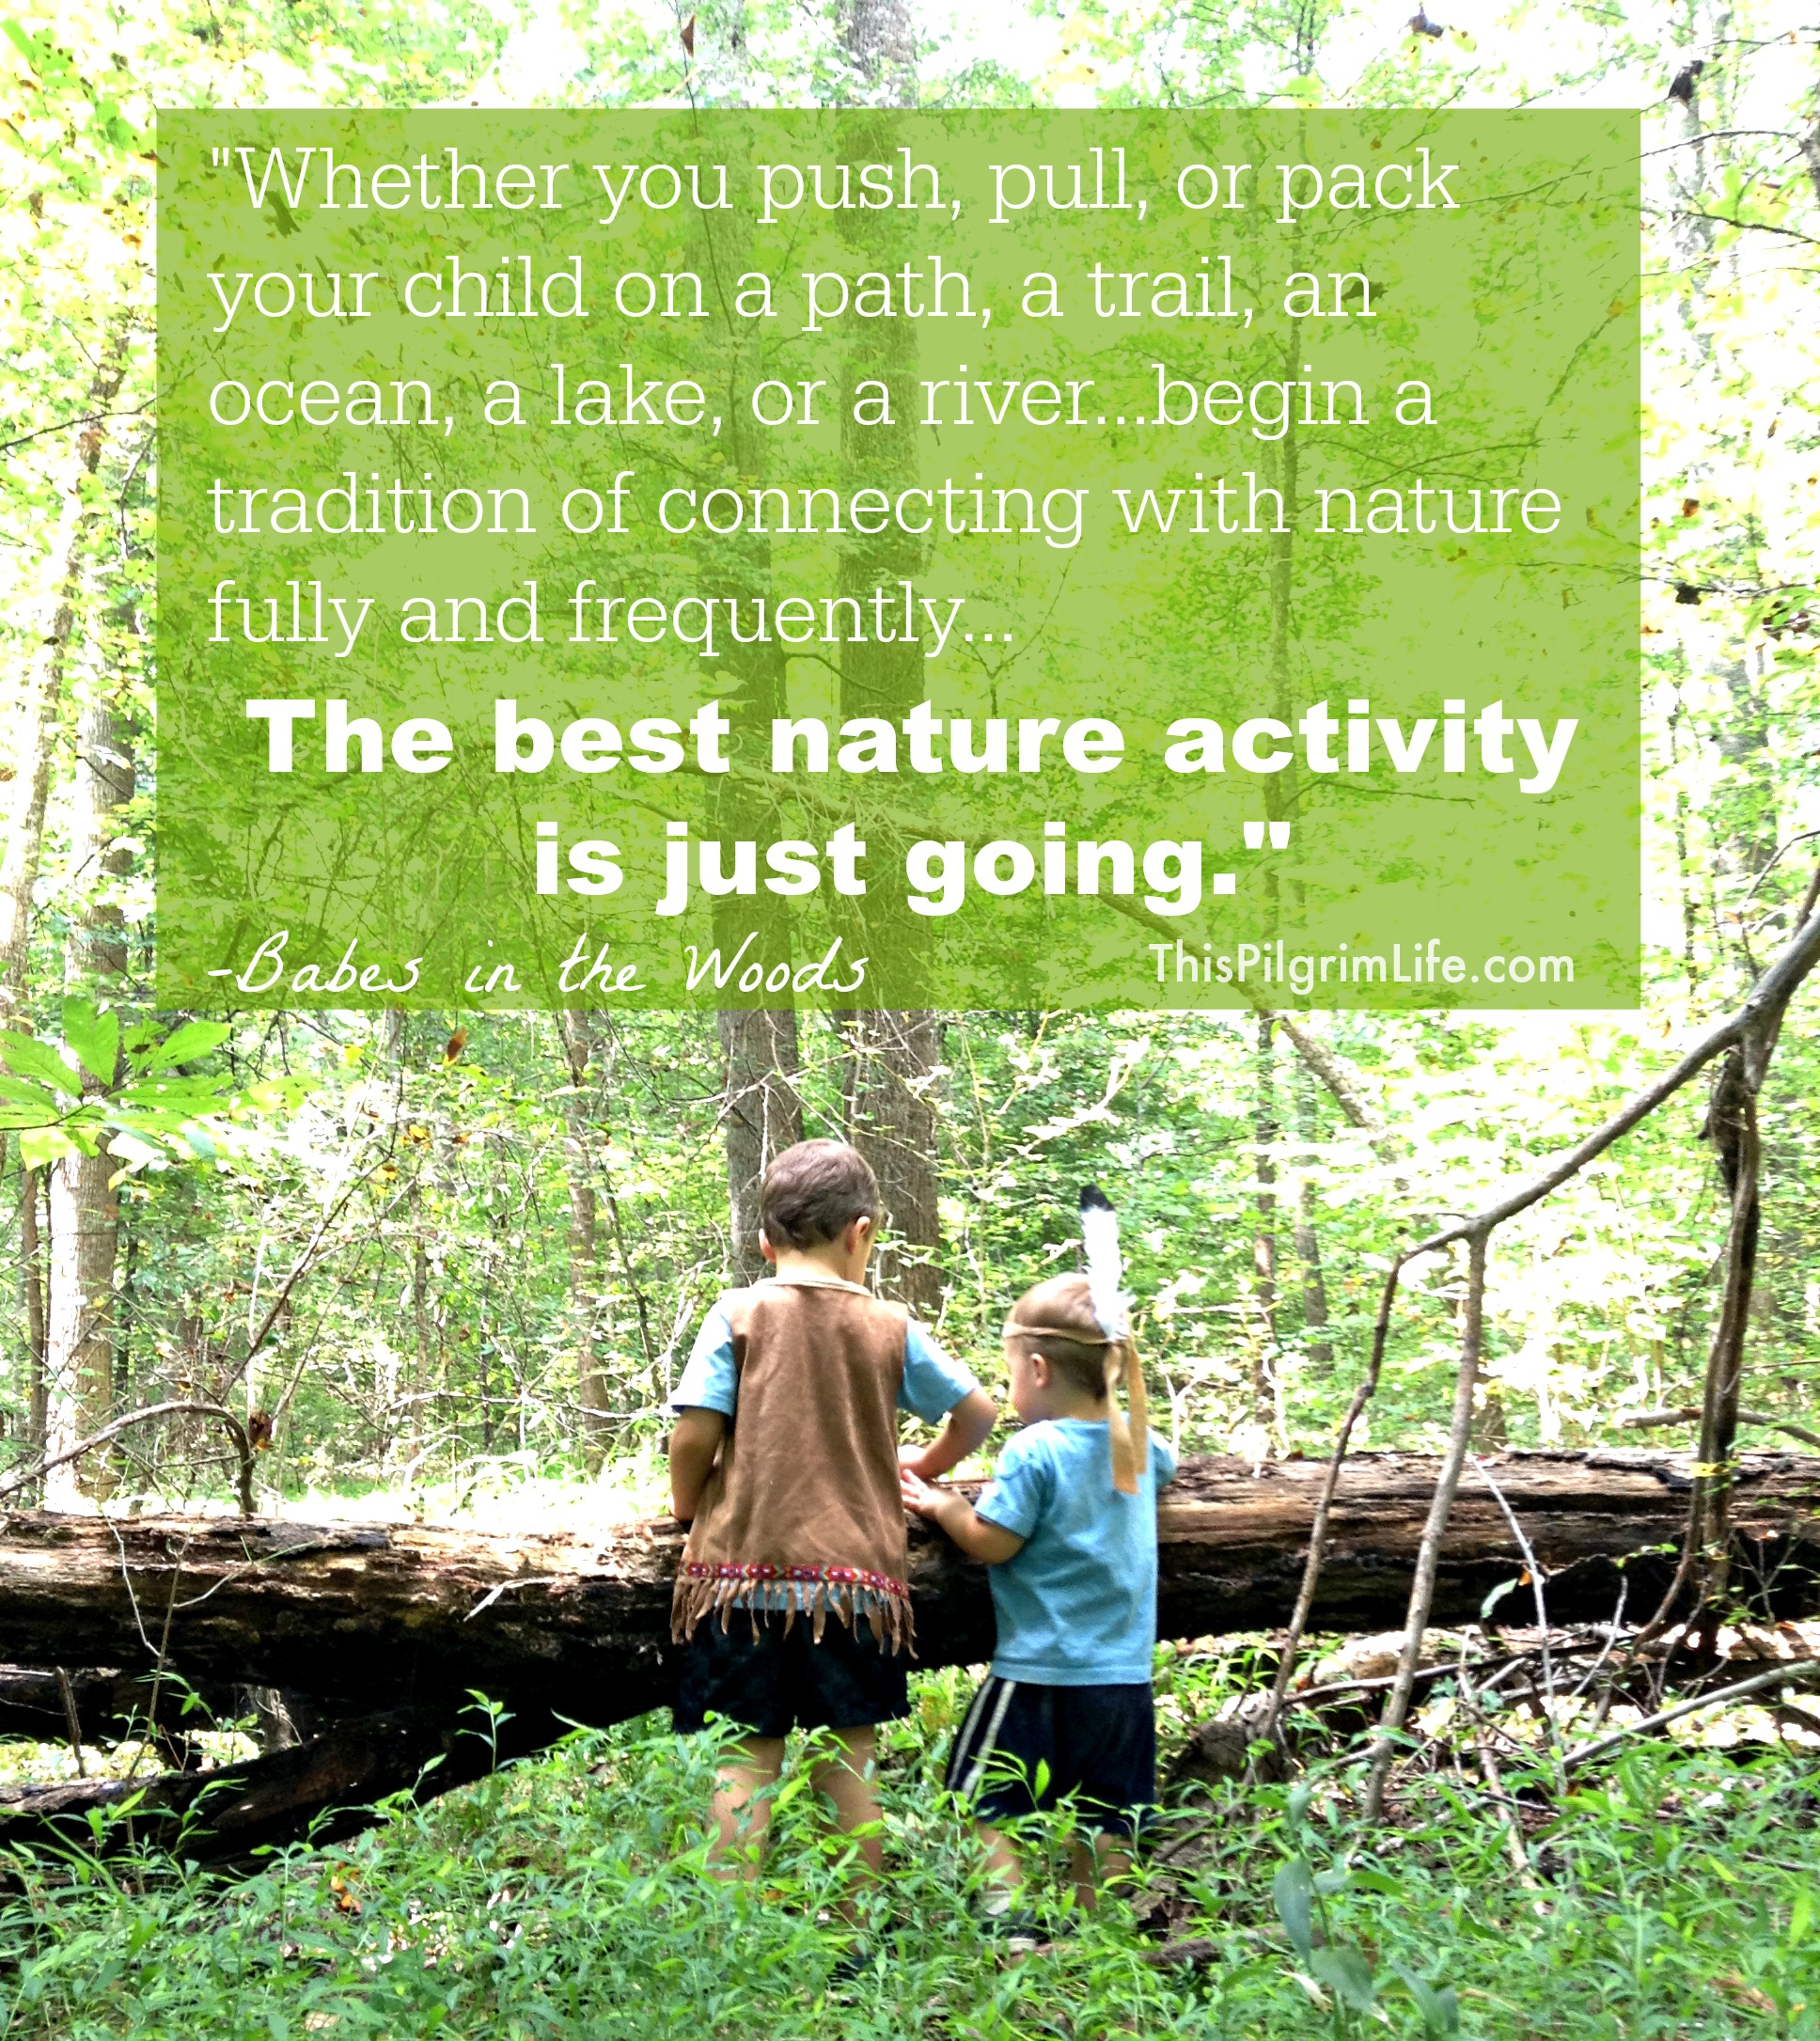 """The best nature activity is just going."""